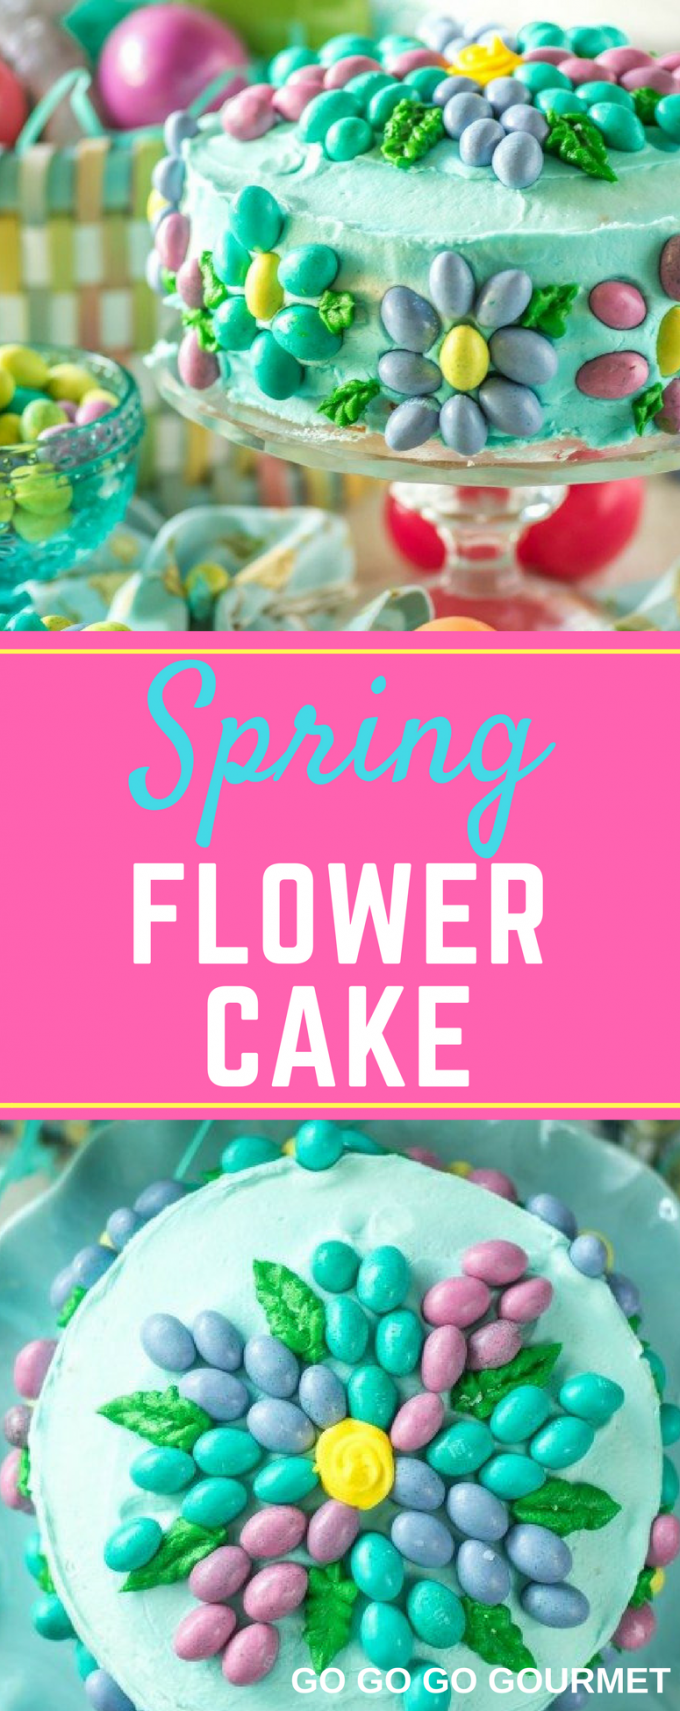 This simple Spring Flower Cake would make the perfect cake for any spring birthday or celebration! This beautiful cake is made easy by using buttercream instead of fondant, and the decorating ideas are endless! #easycaketutorials #springflowercake #easycakedesigns #springdesserts #gogogogourmet